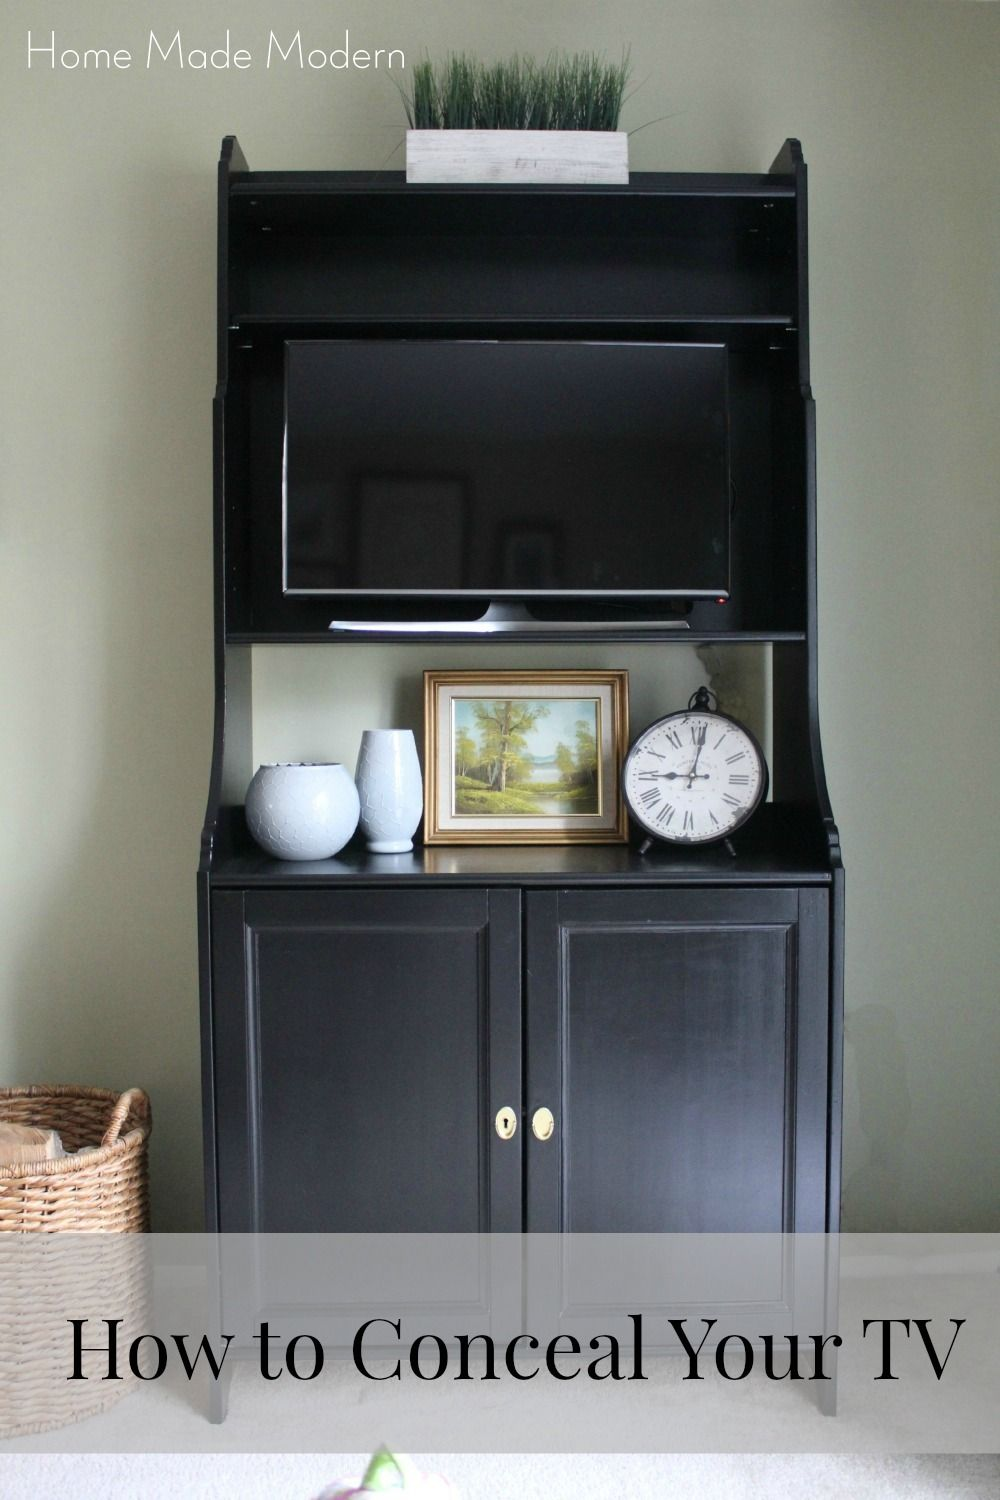 Paint Your Furniture Black To Hide TV Good Idea For Future Guest Room Dining HutchIkea CabinetsIkea HackersWeekend